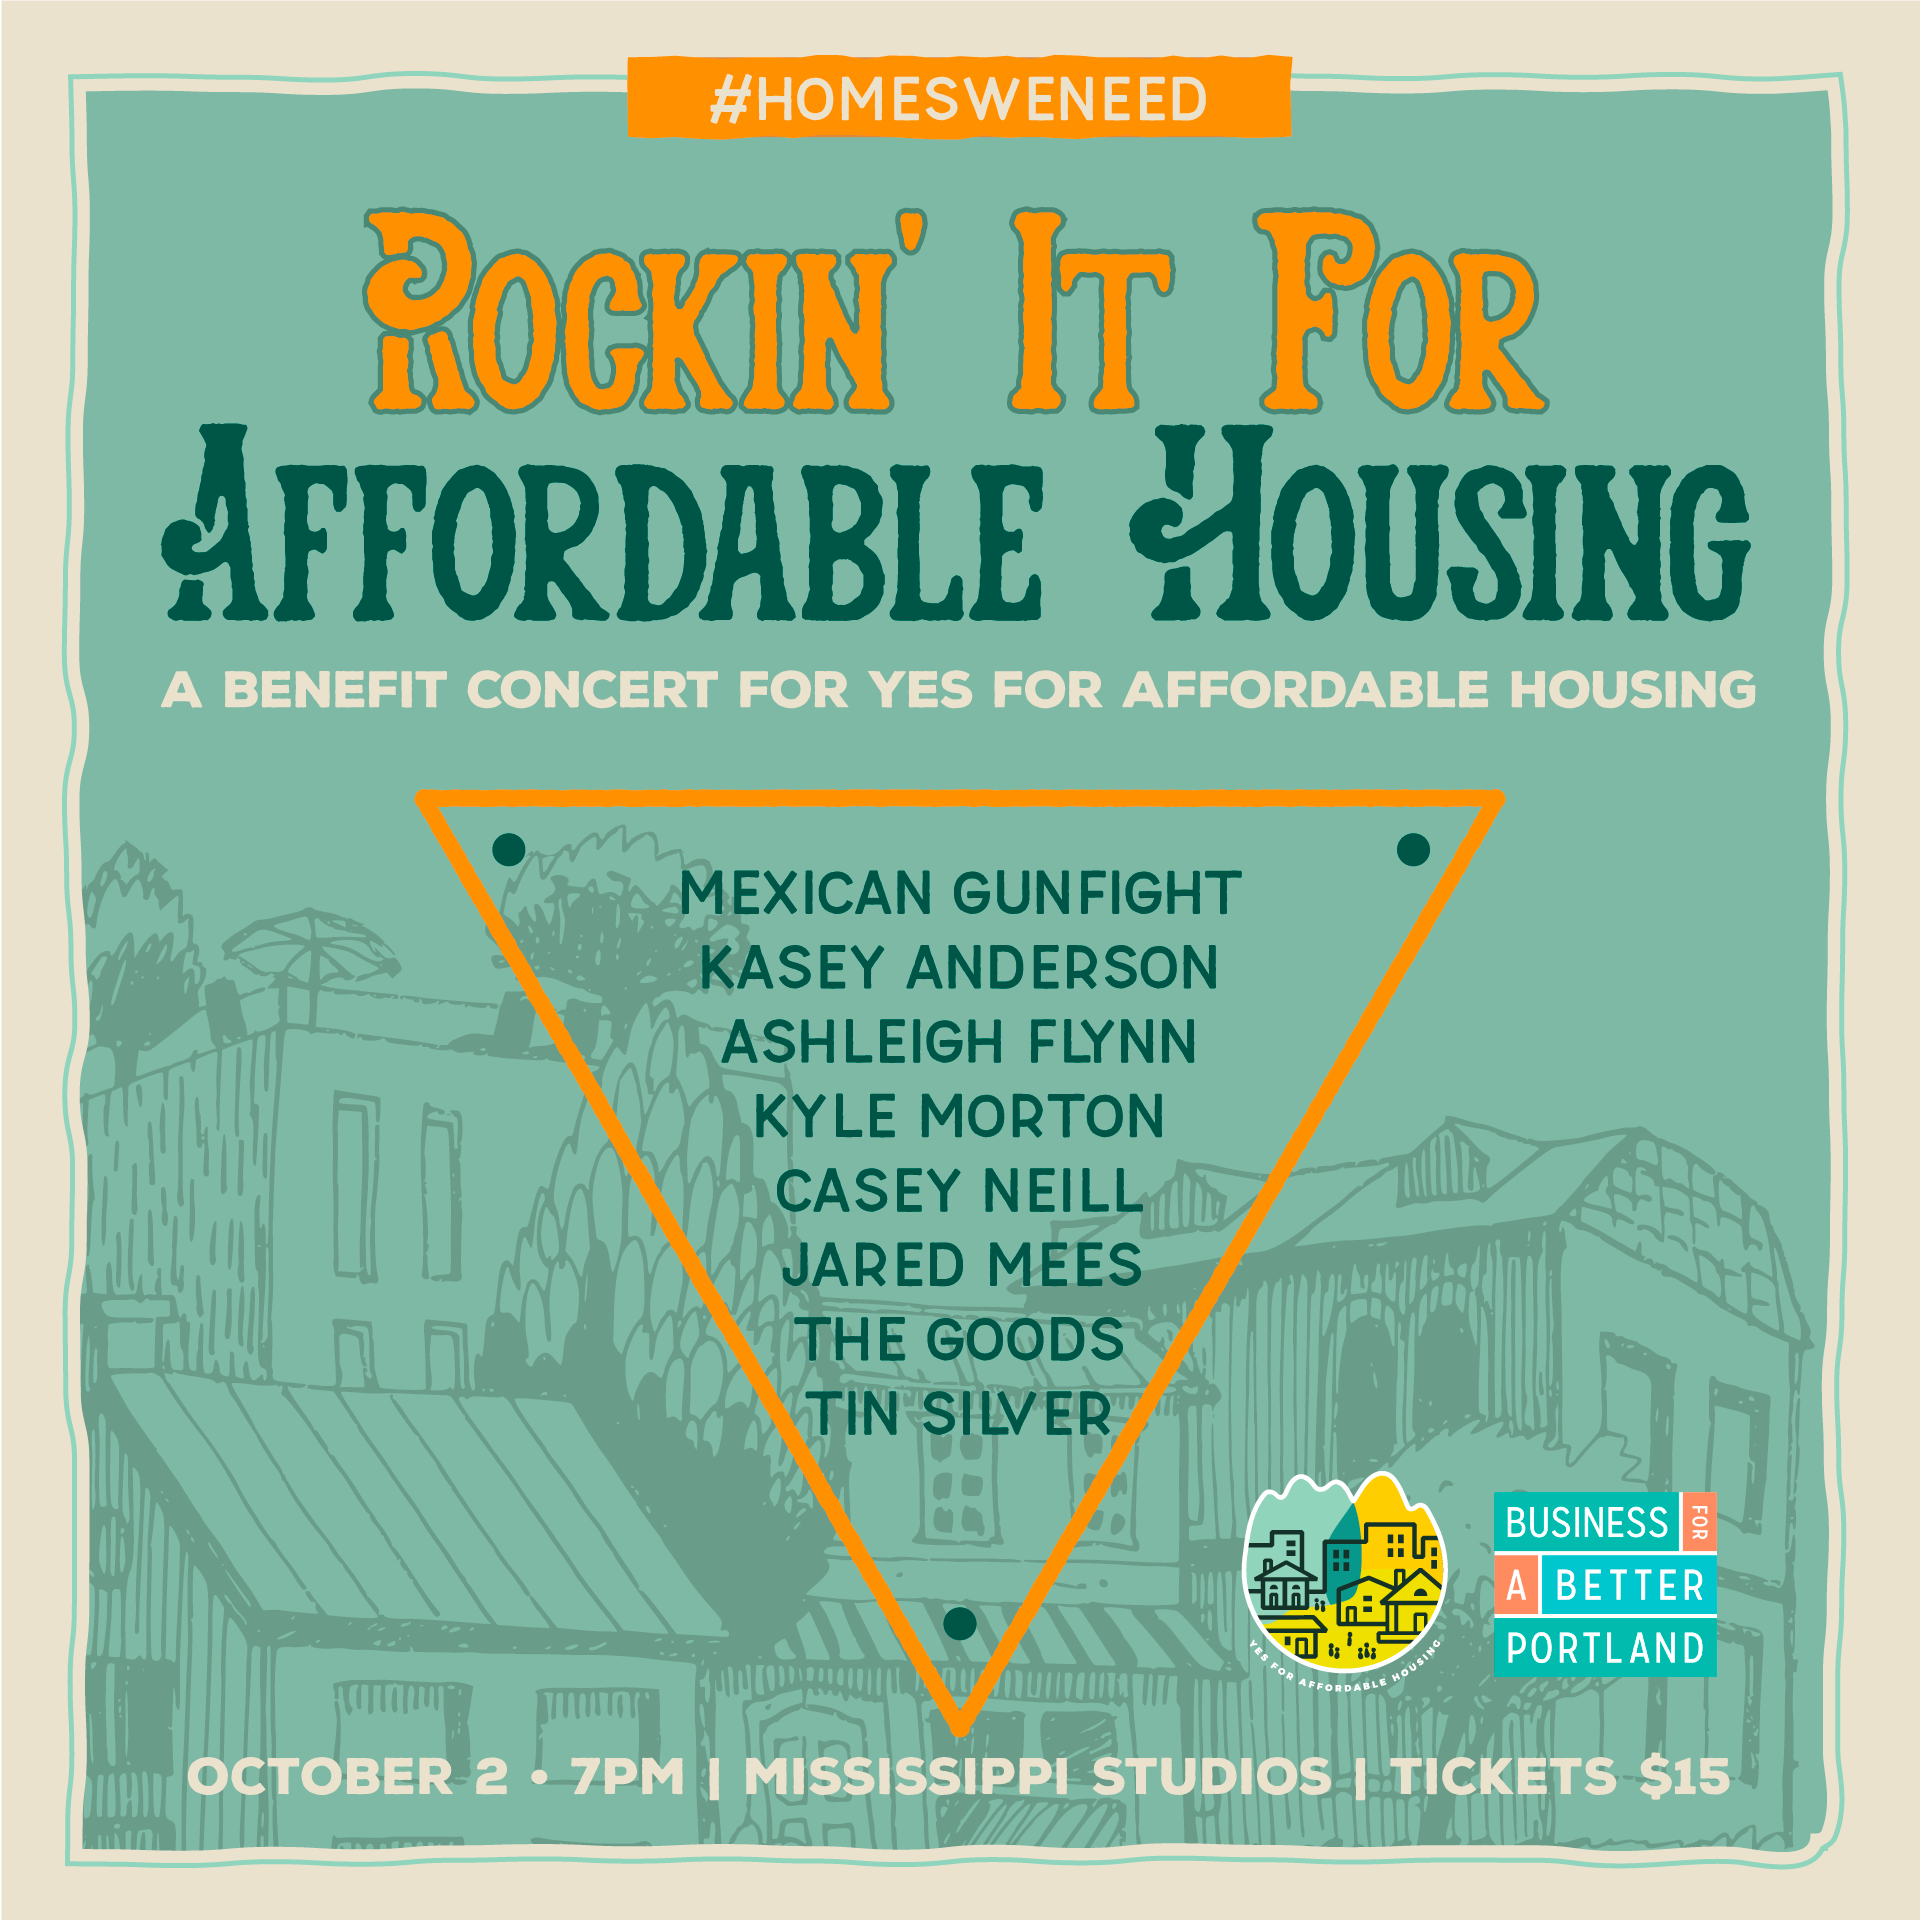 Portland Rockin' It For Affordable Housing Benefit Concert